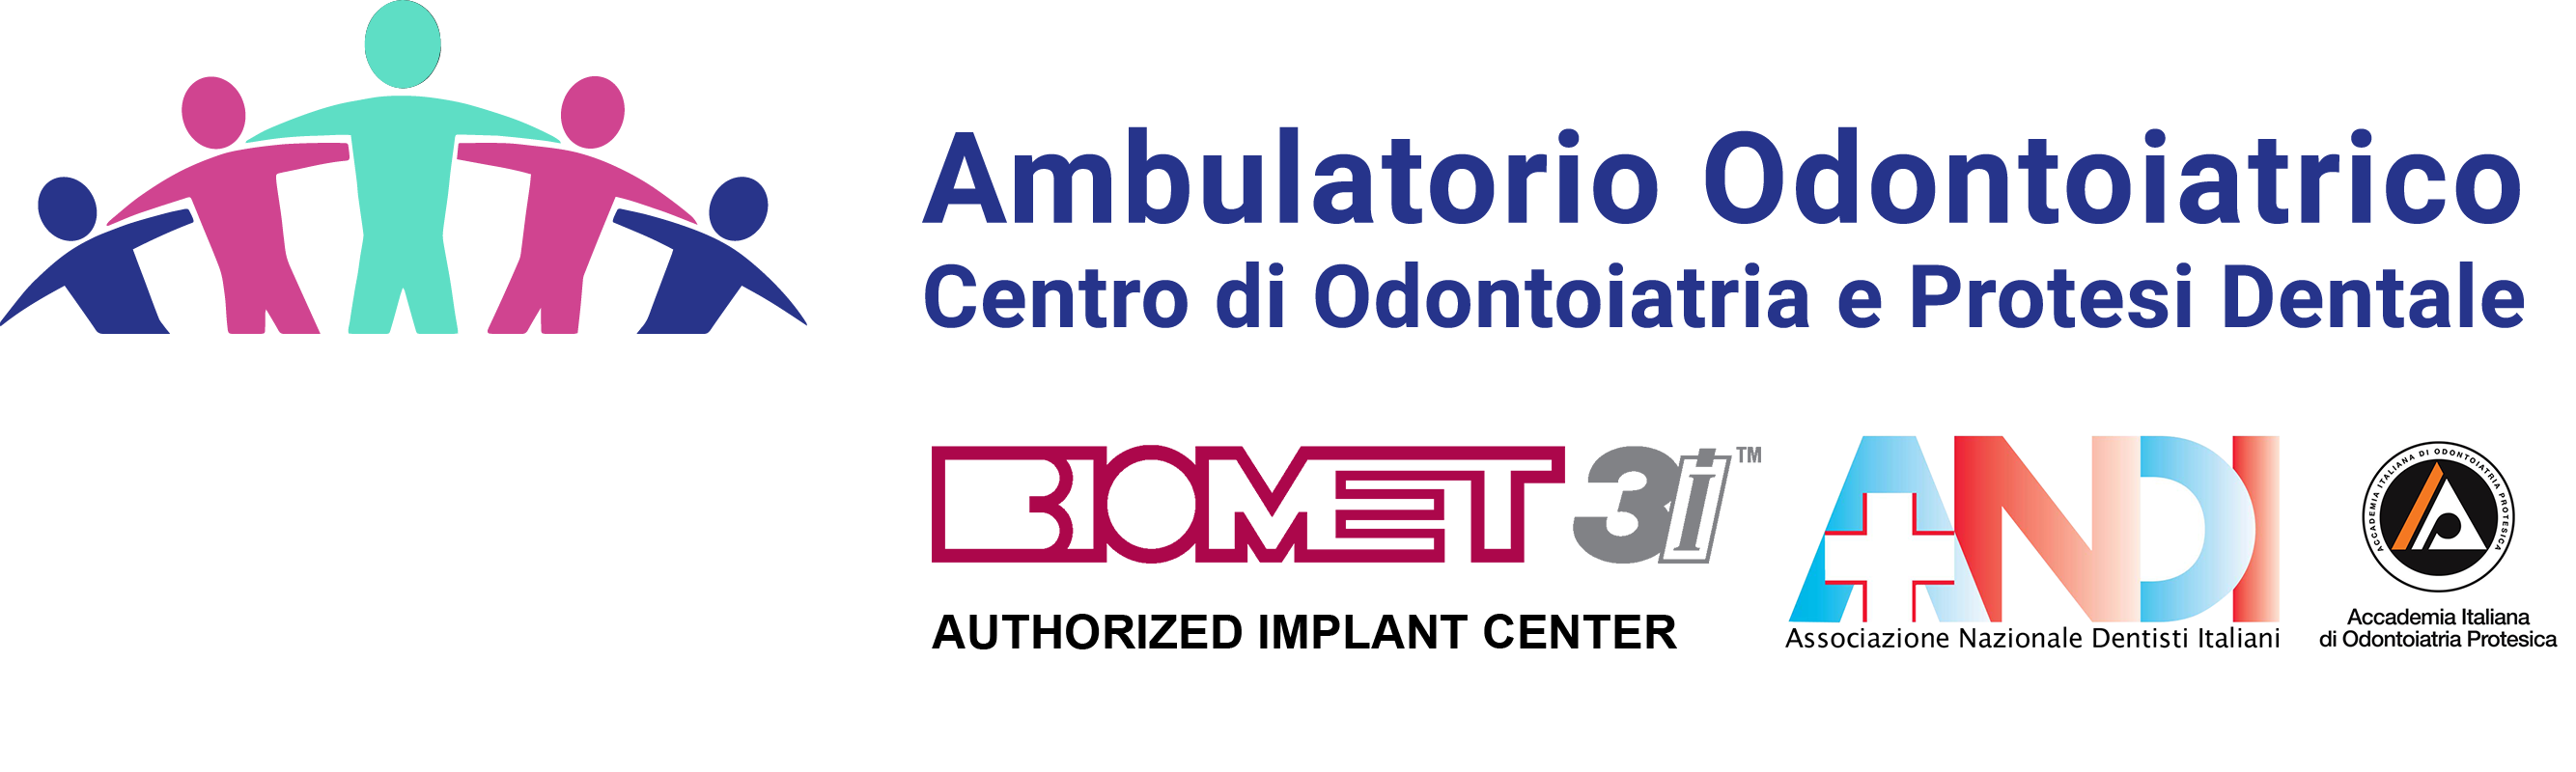 Ambulatorio Odontoiatrico Logo